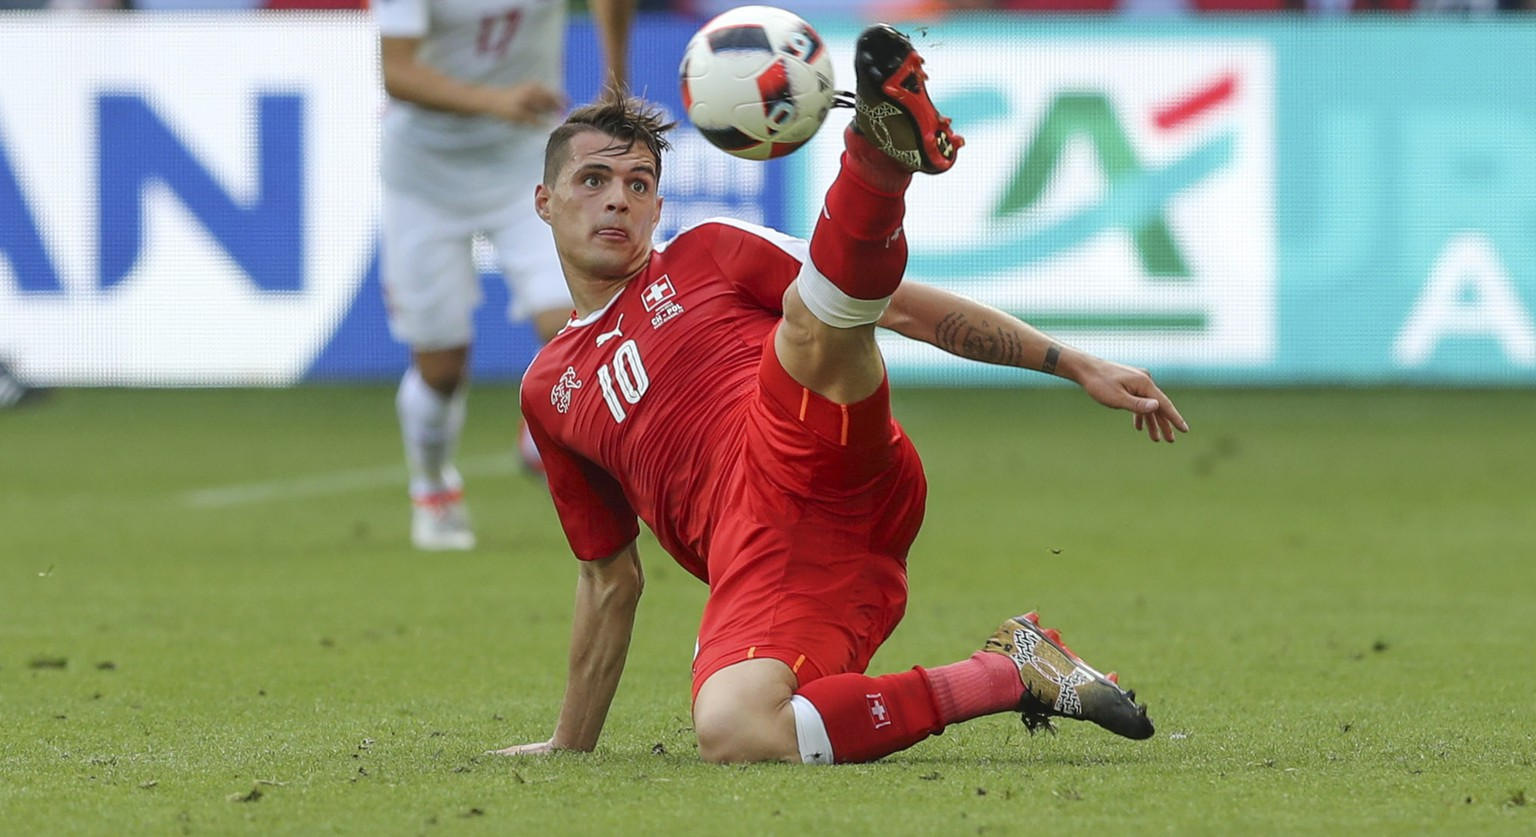 Switzerland's Granit Xhaka eyes the ball during the Euro 2016 round of 16 soccer match between Switzerland and Poland, at the Geoffroy Guichard stadium in Saint-Etienne, France, Saturday, June 25, 2016. (AP Photo/Thanassis Stavrakis)